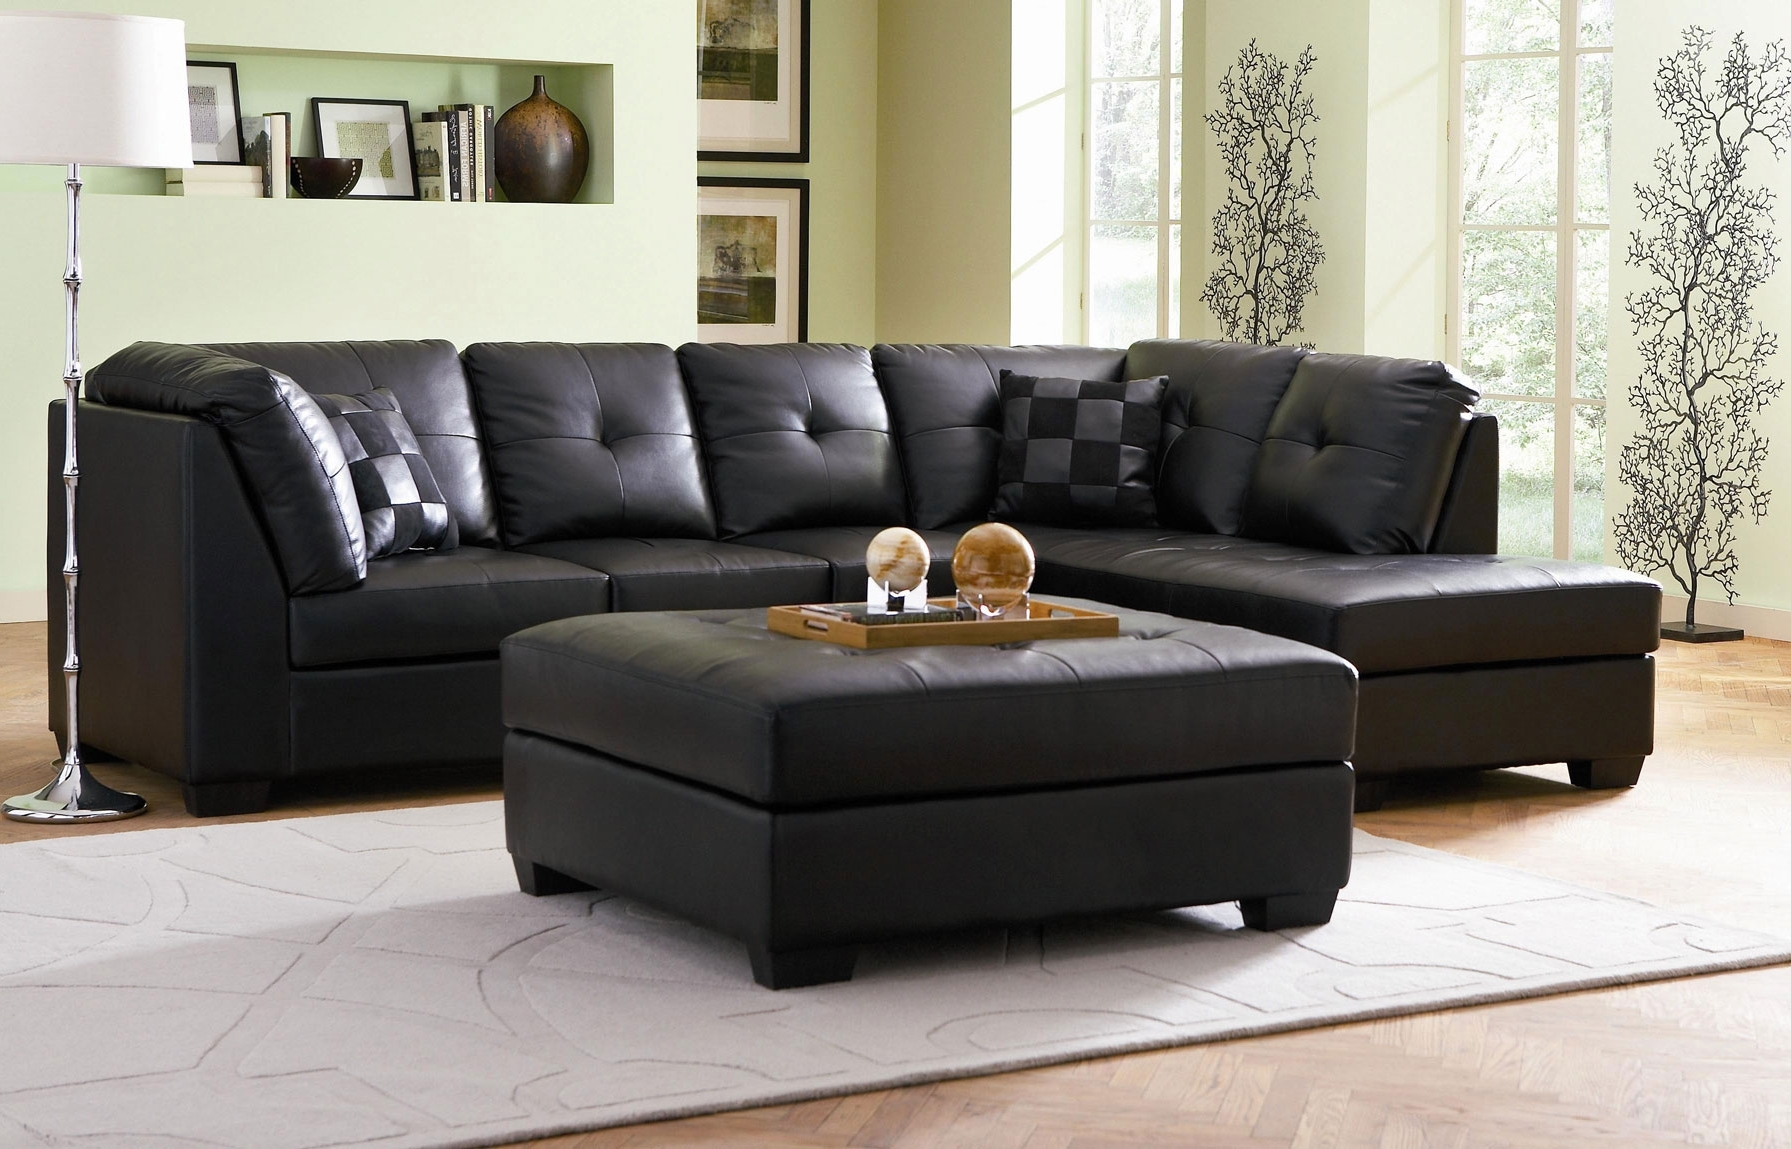 2018 Wilmington Nc Sectional Sofas Inside Sectional Sofa: The Best Sectional Sofas Charlotte Nc Sofa Mart (View 1 of 15)